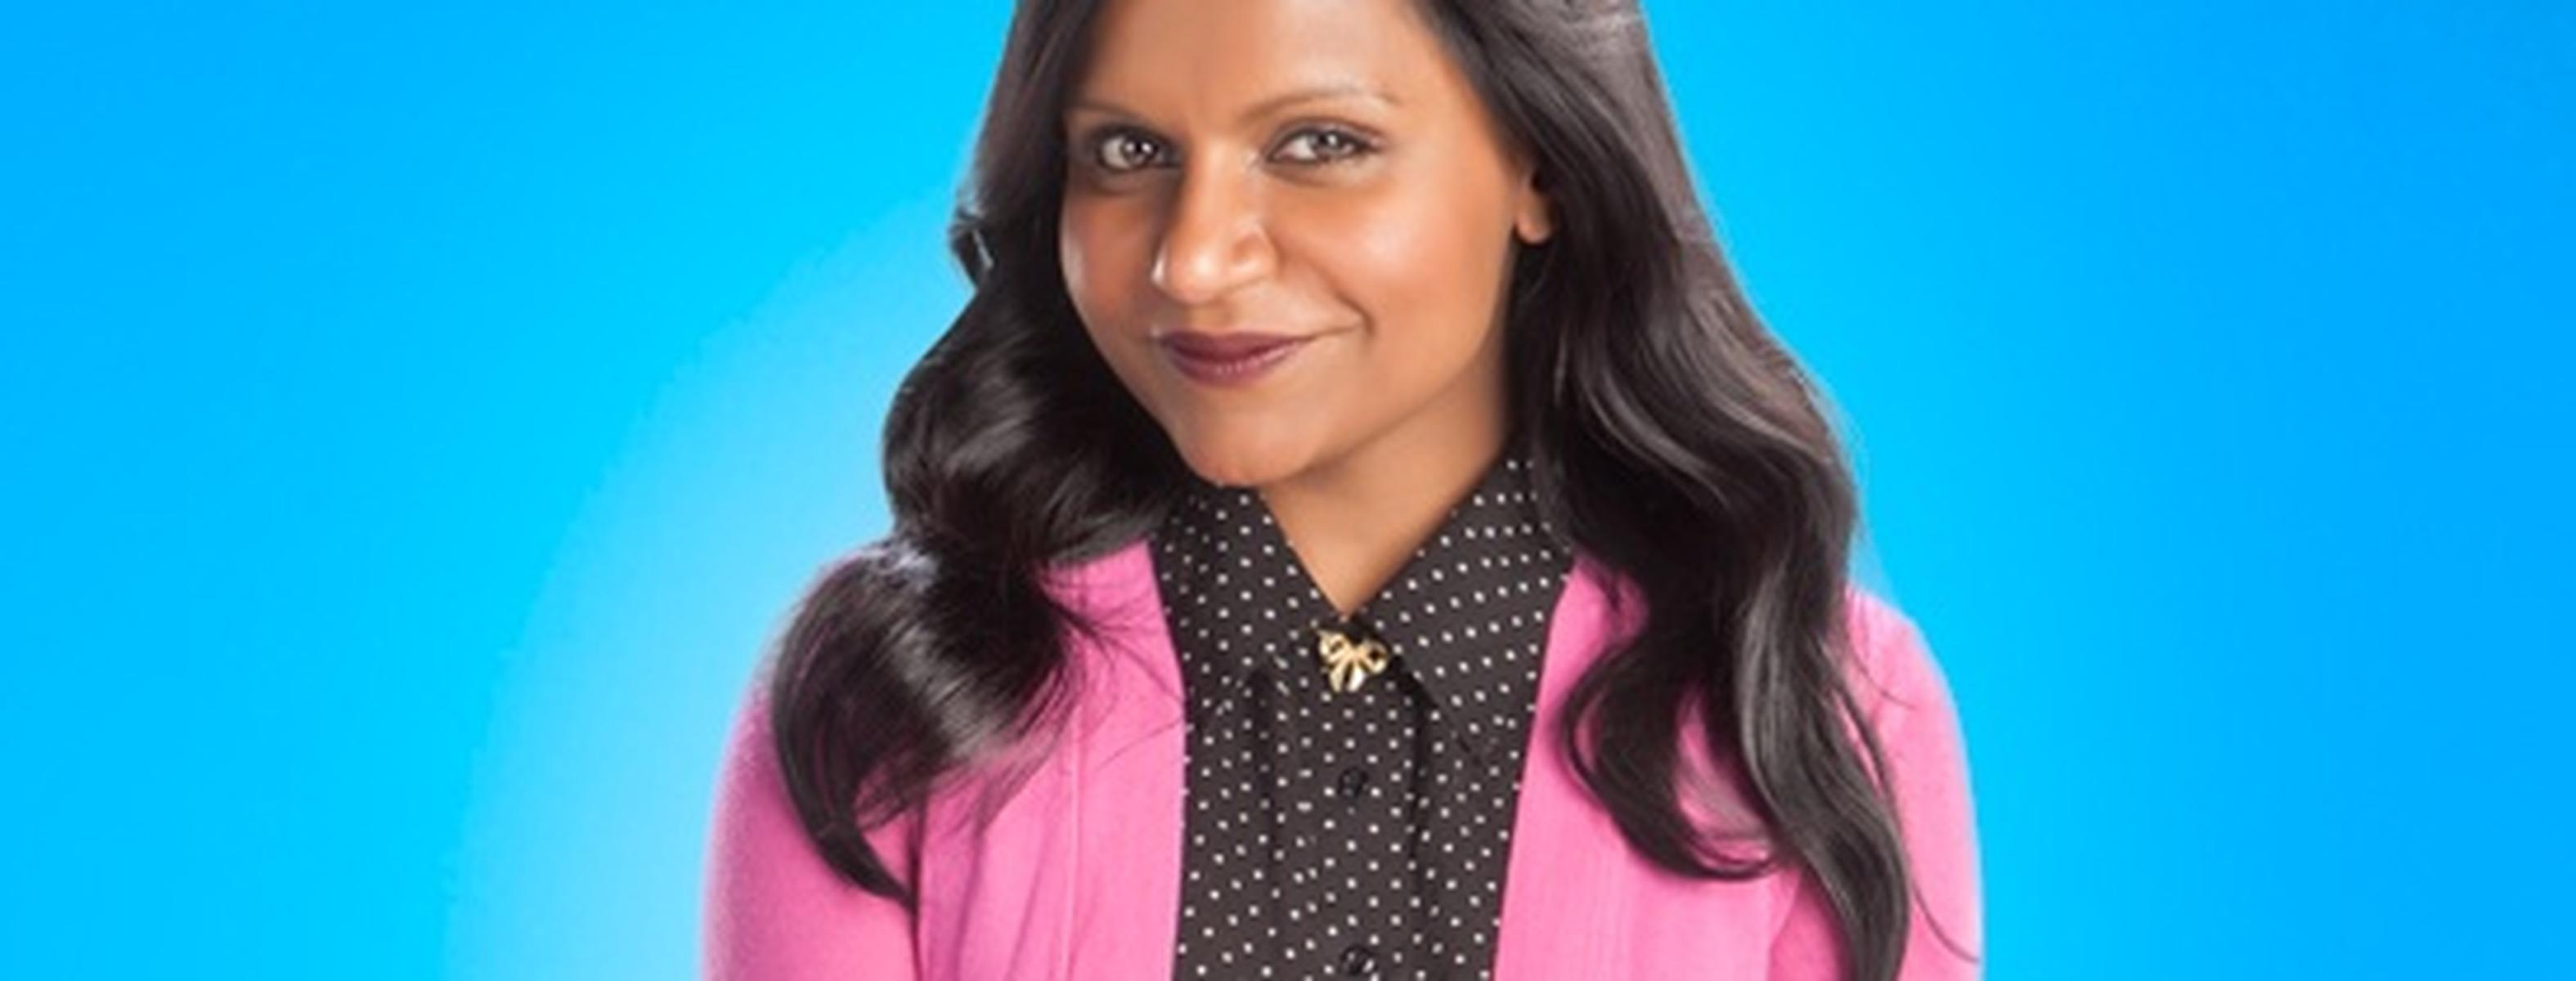 How Mindy Kaling Cast The Mindy Project